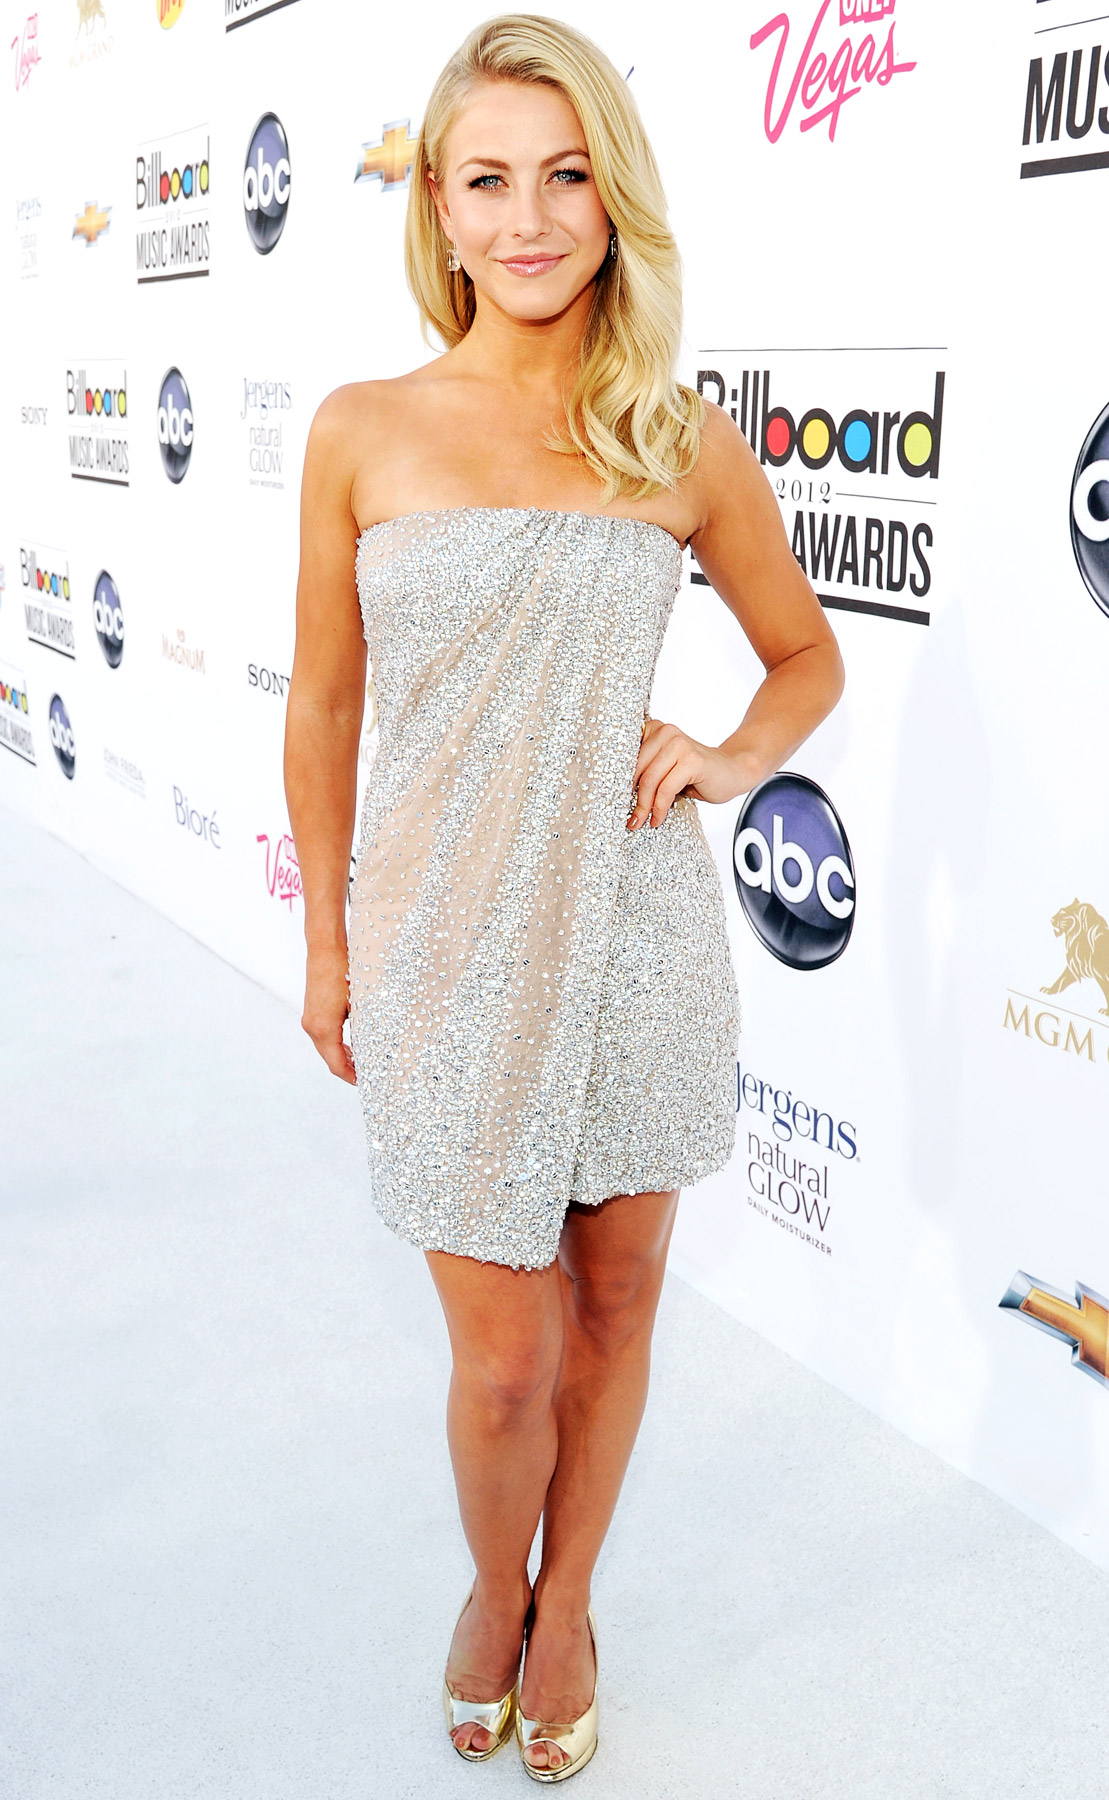 Julianne Hough Measurements Height and Weight